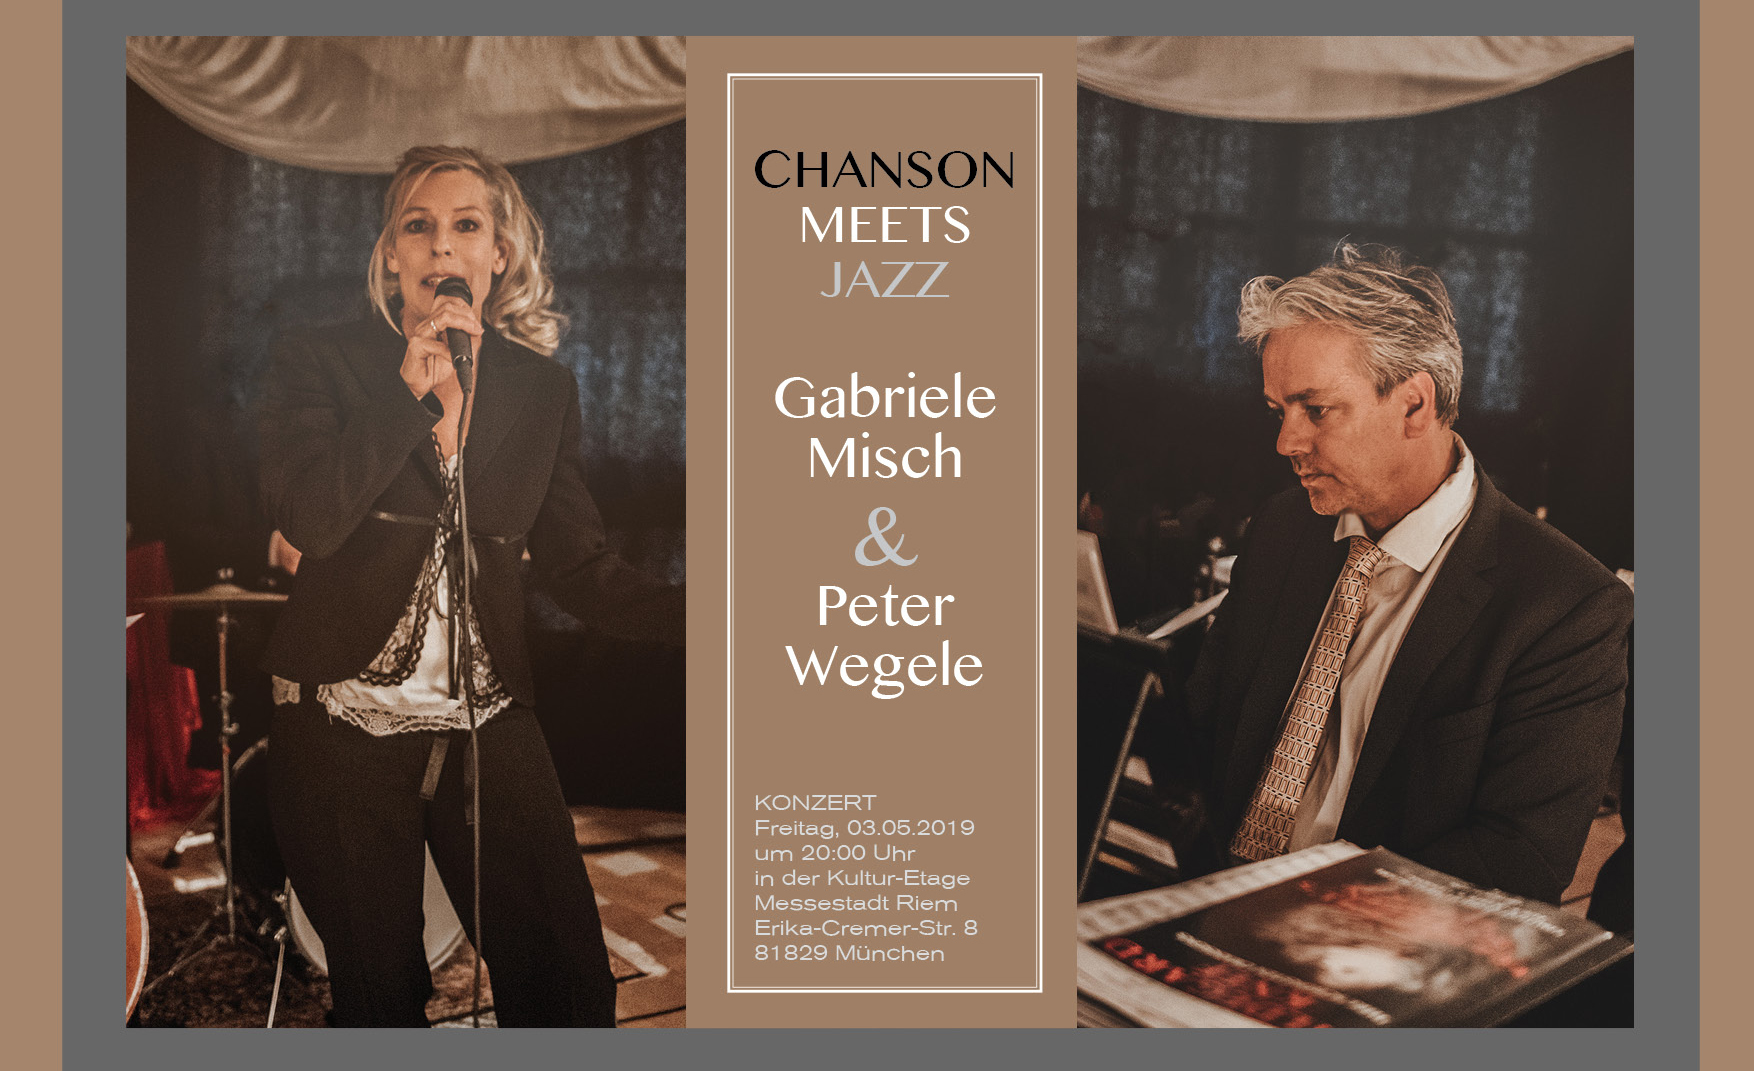 Chanson meets Jazz Duo